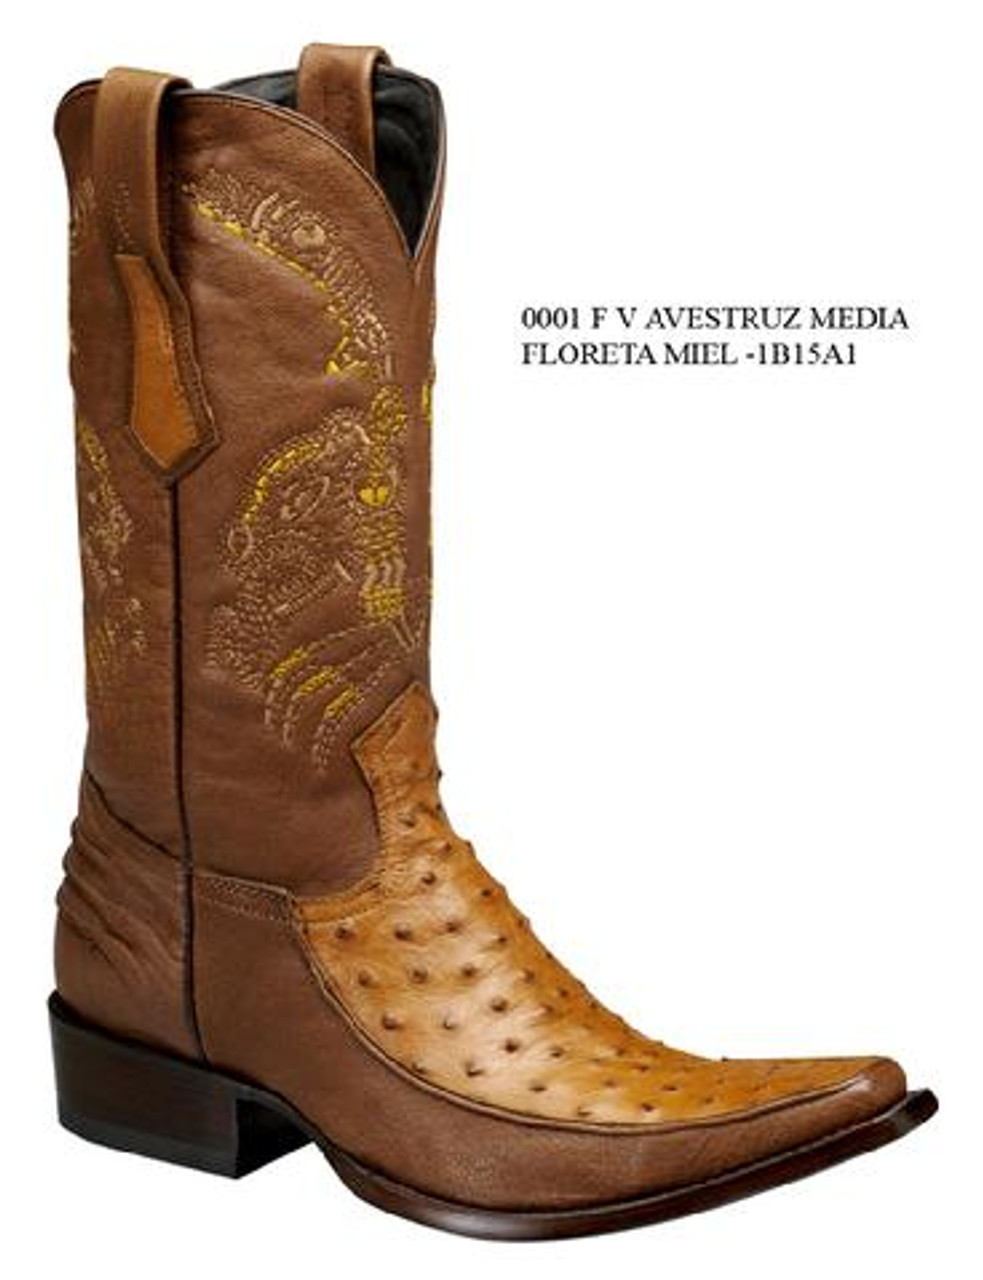 Cuadra Boots Half Quill Ostrich Leather Versace Toe Honey